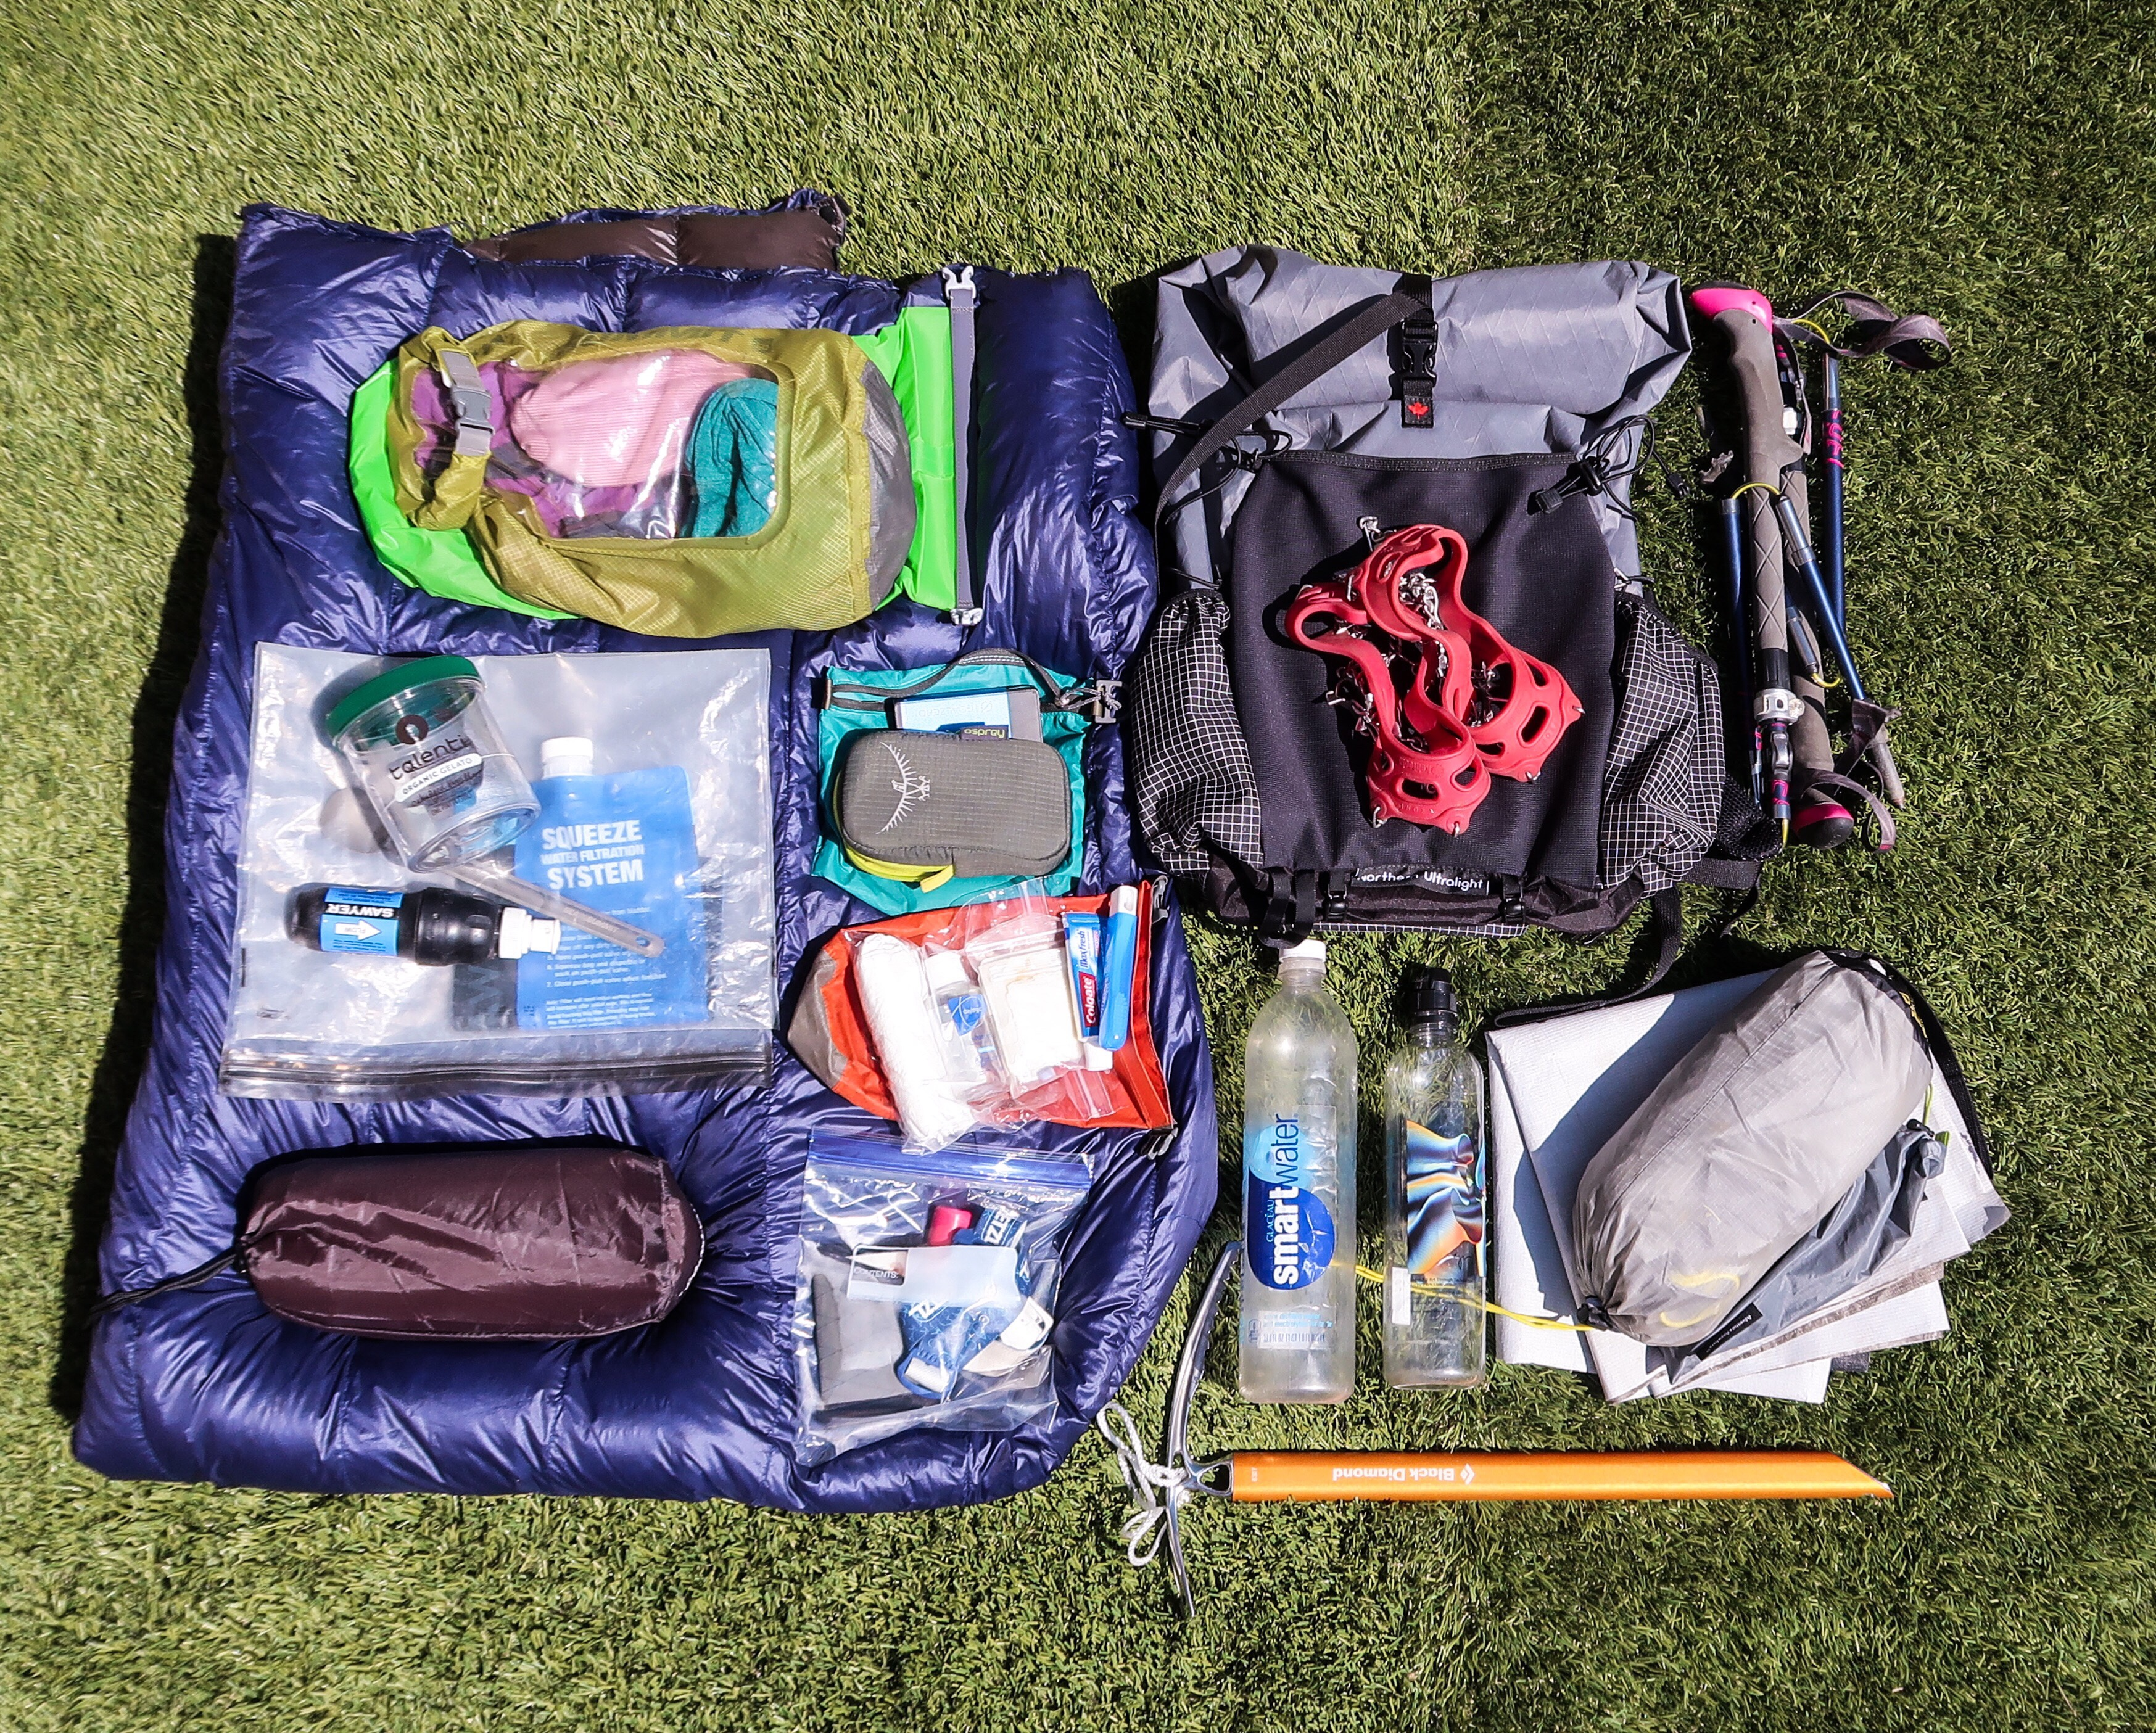 Baby's Wind River Gear List: High Elevation, Potential Snow - The Trek